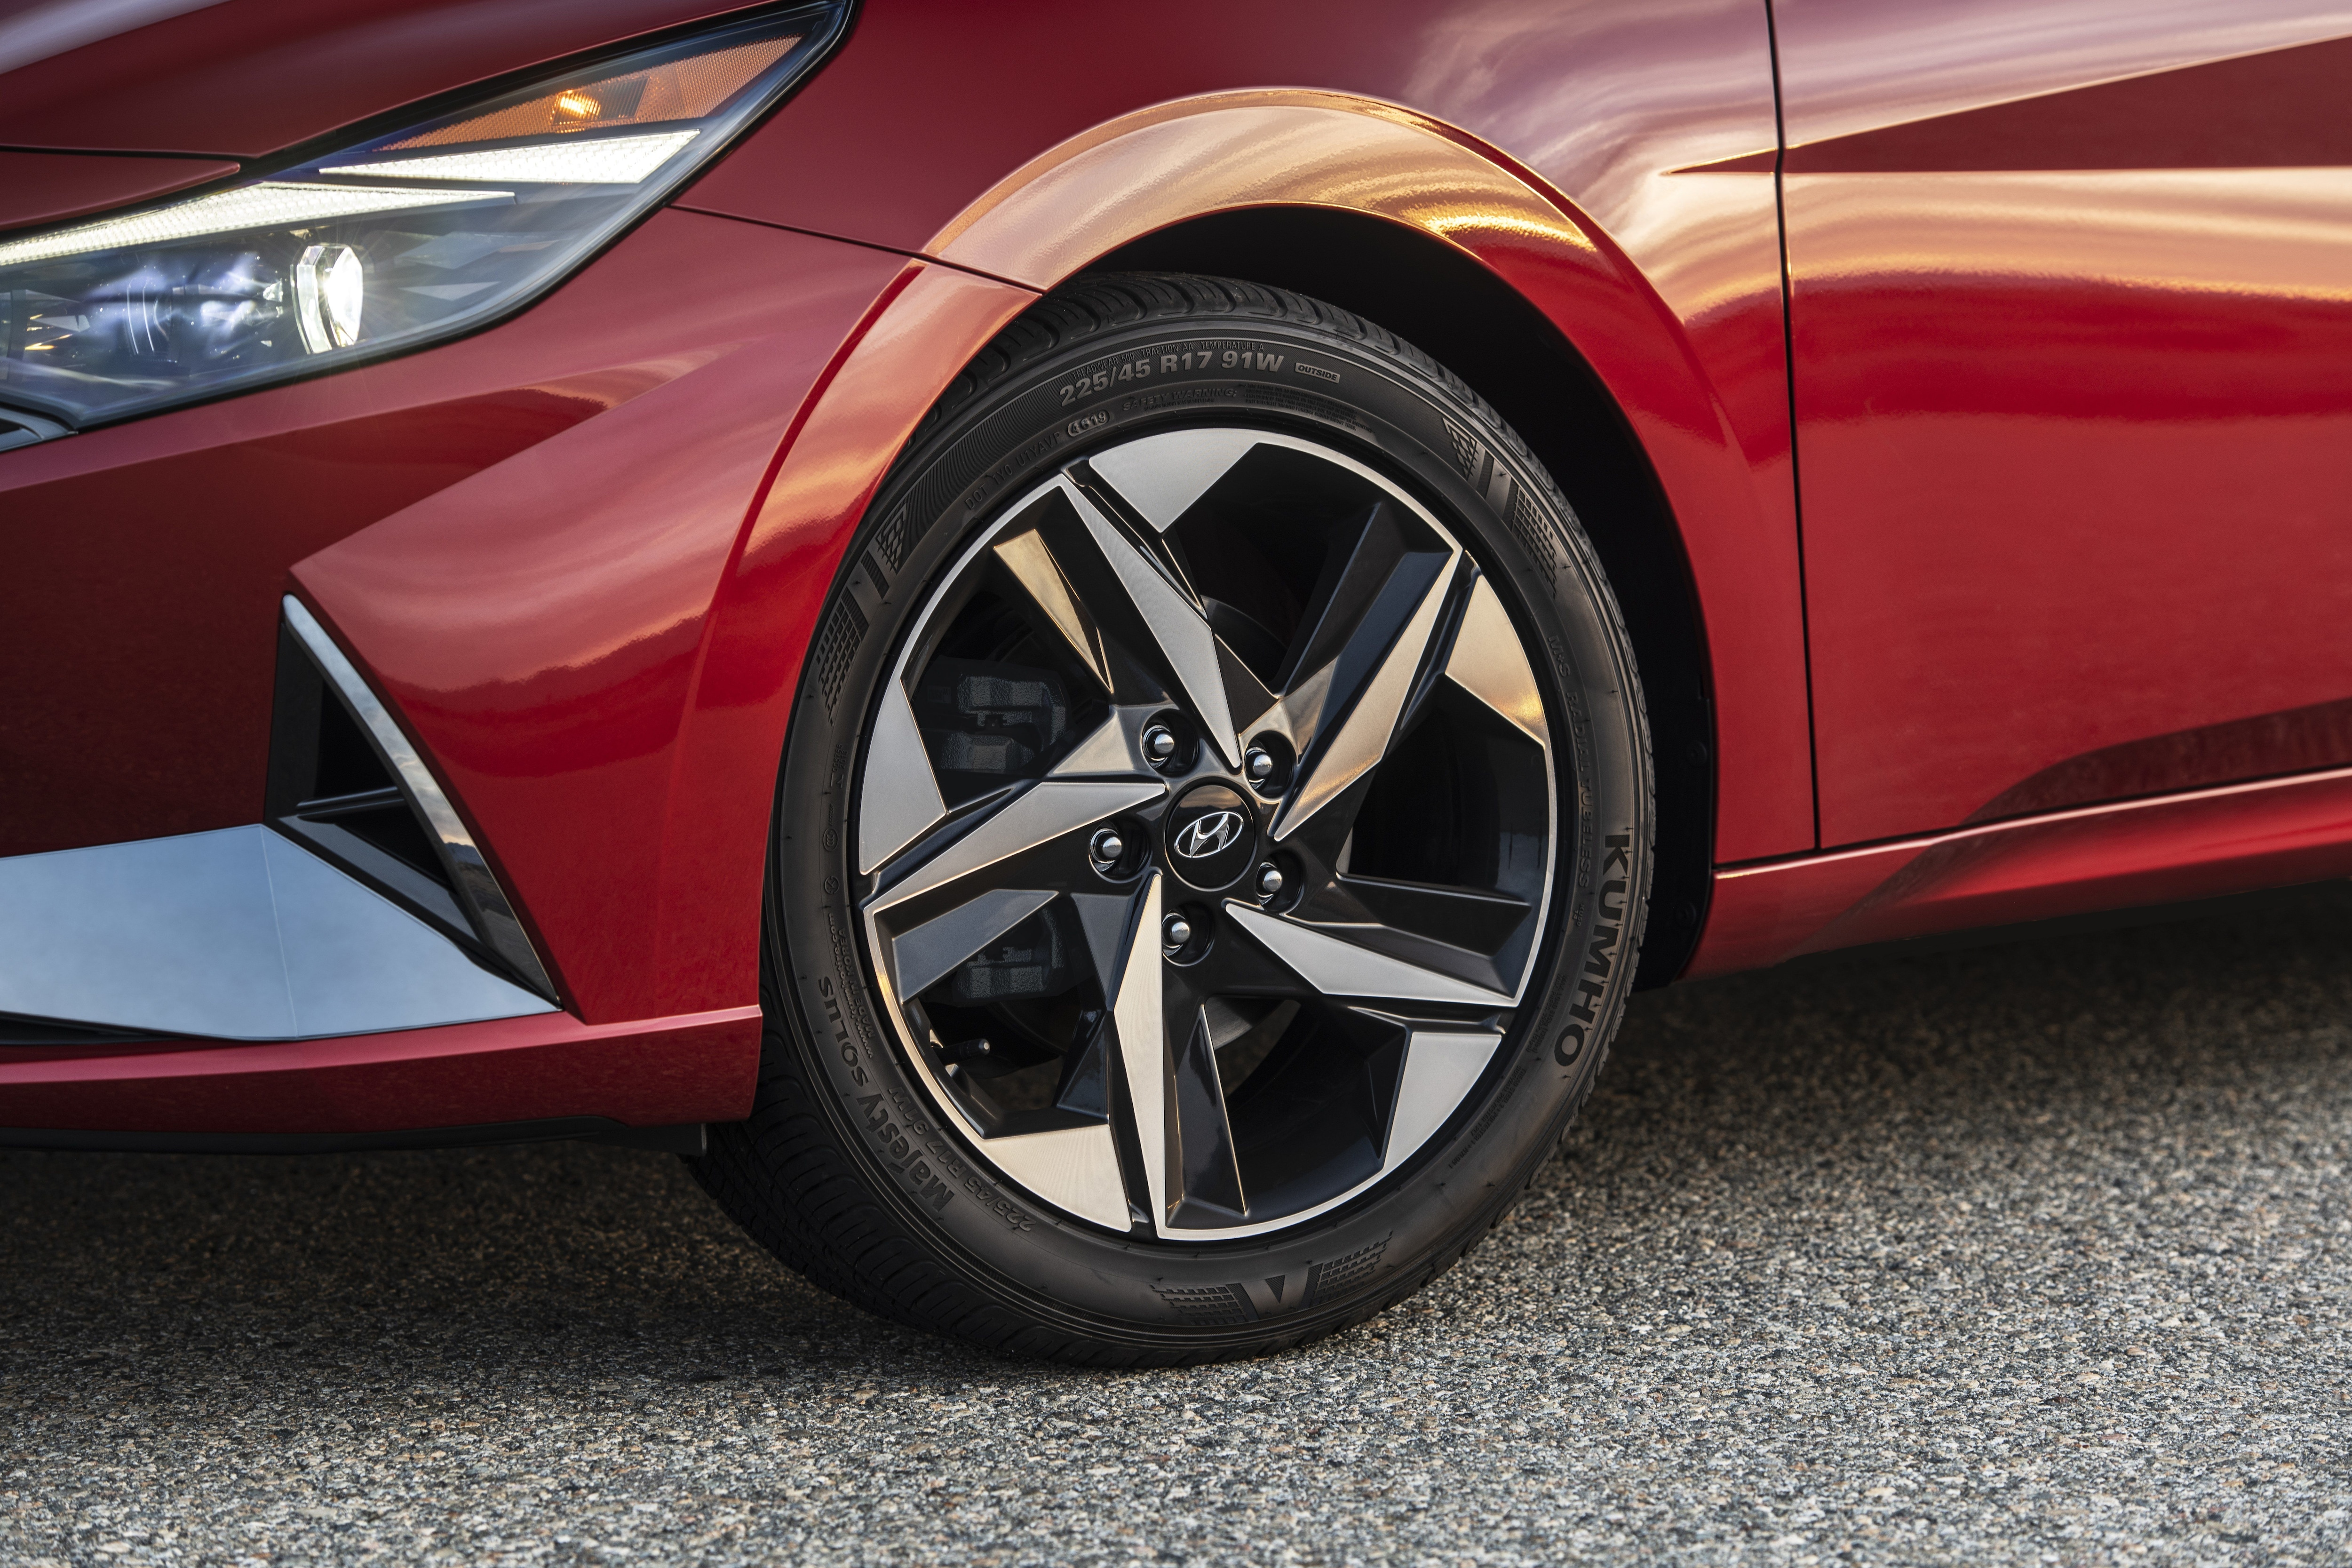 Compared to its predecessor, 2021 Elantra's wheelbase has been extended by 0.8 inches (20 mm) to 107.1 inches (2,720 mm) in total.